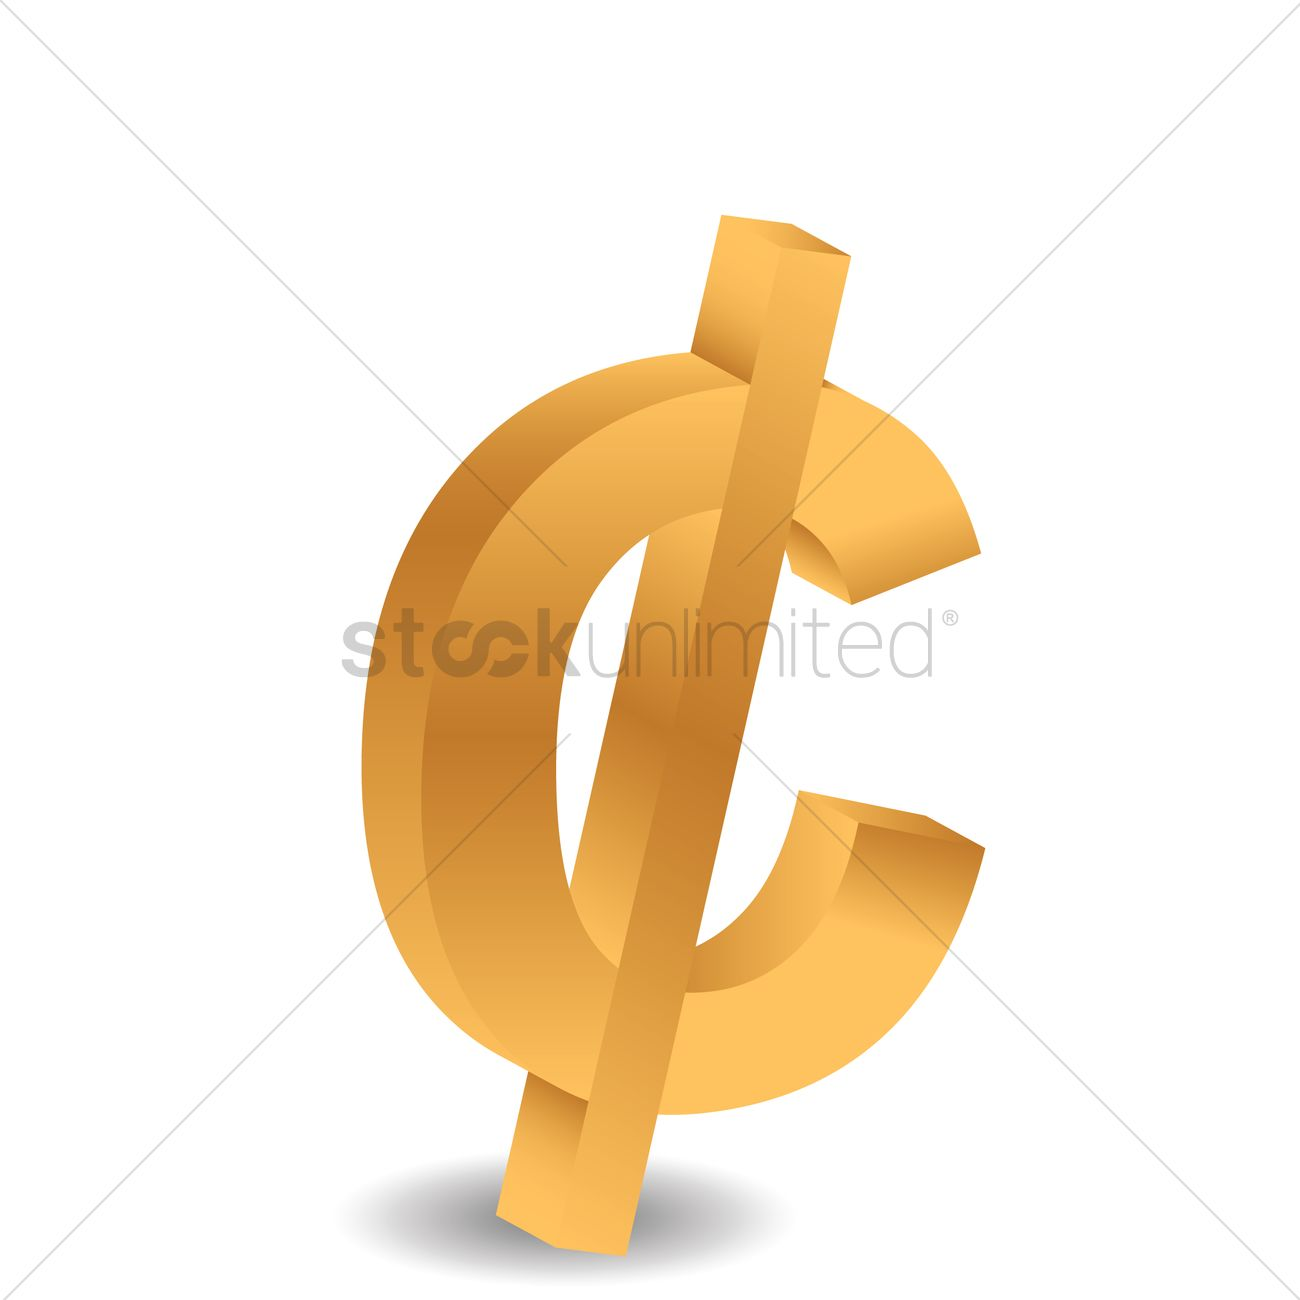 hight resolution of symbol vector image stockunlimited economy clipart dollar cent image transparent library